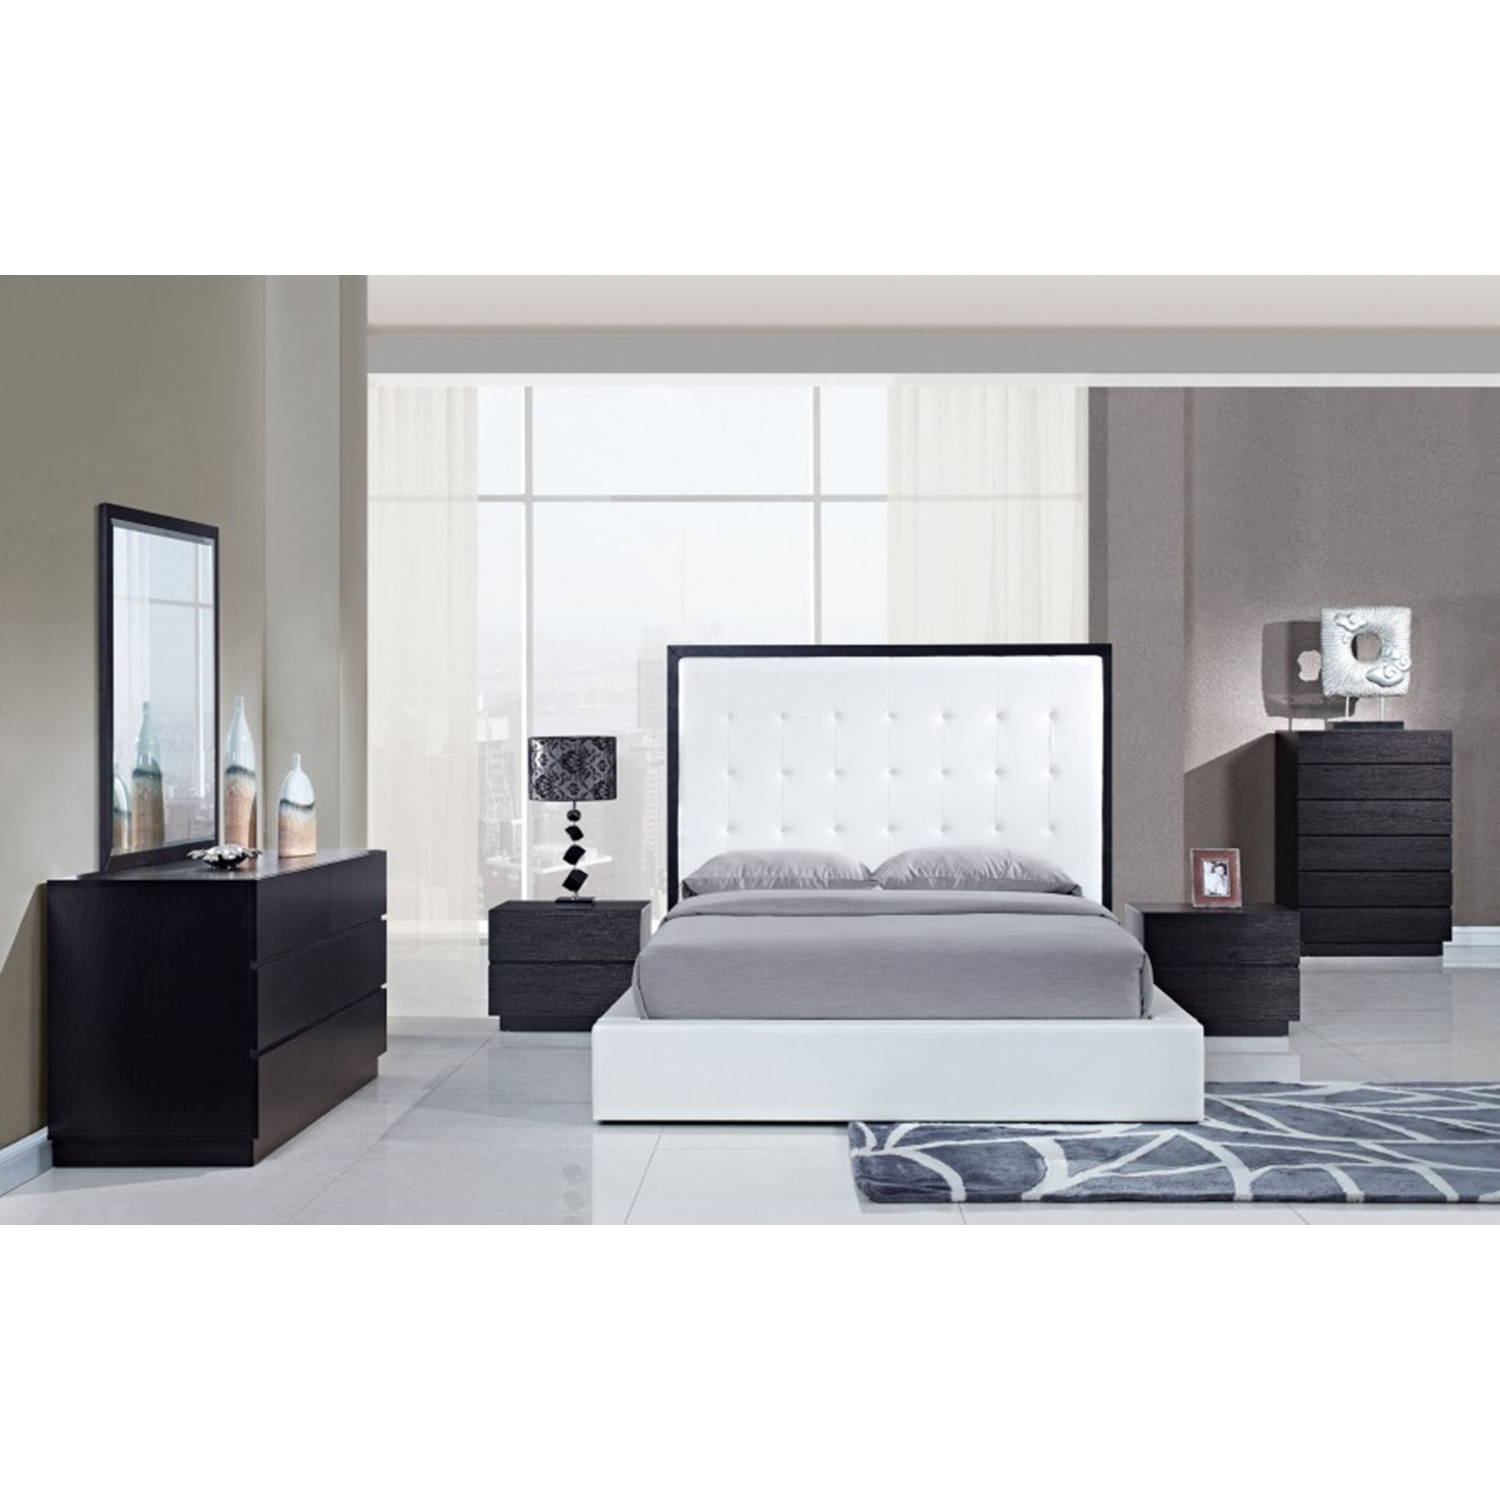 Metro Bedroom Set in White/Wenge - GLO-METRO-WH-SET